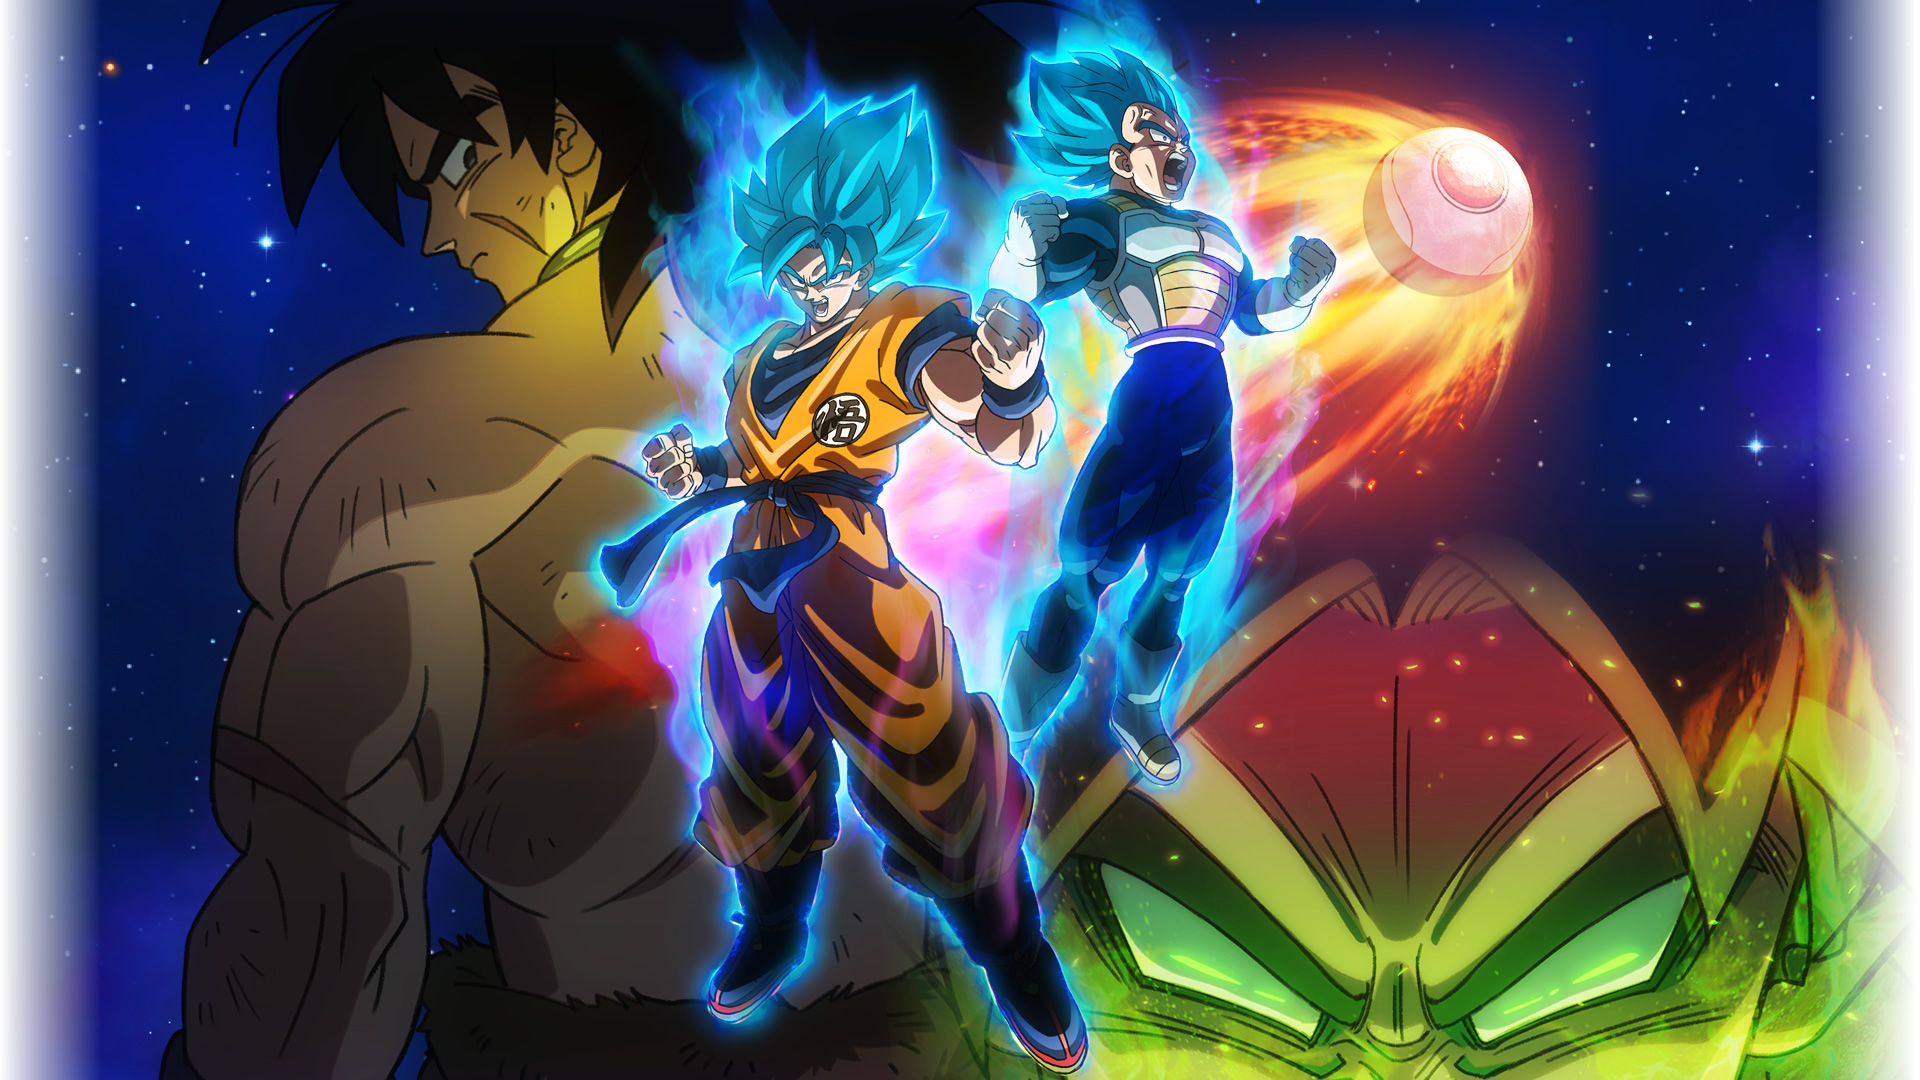 Dragon Ball Super Broly Sera Le Nouvel Ennemi De Goku Et Vegeta